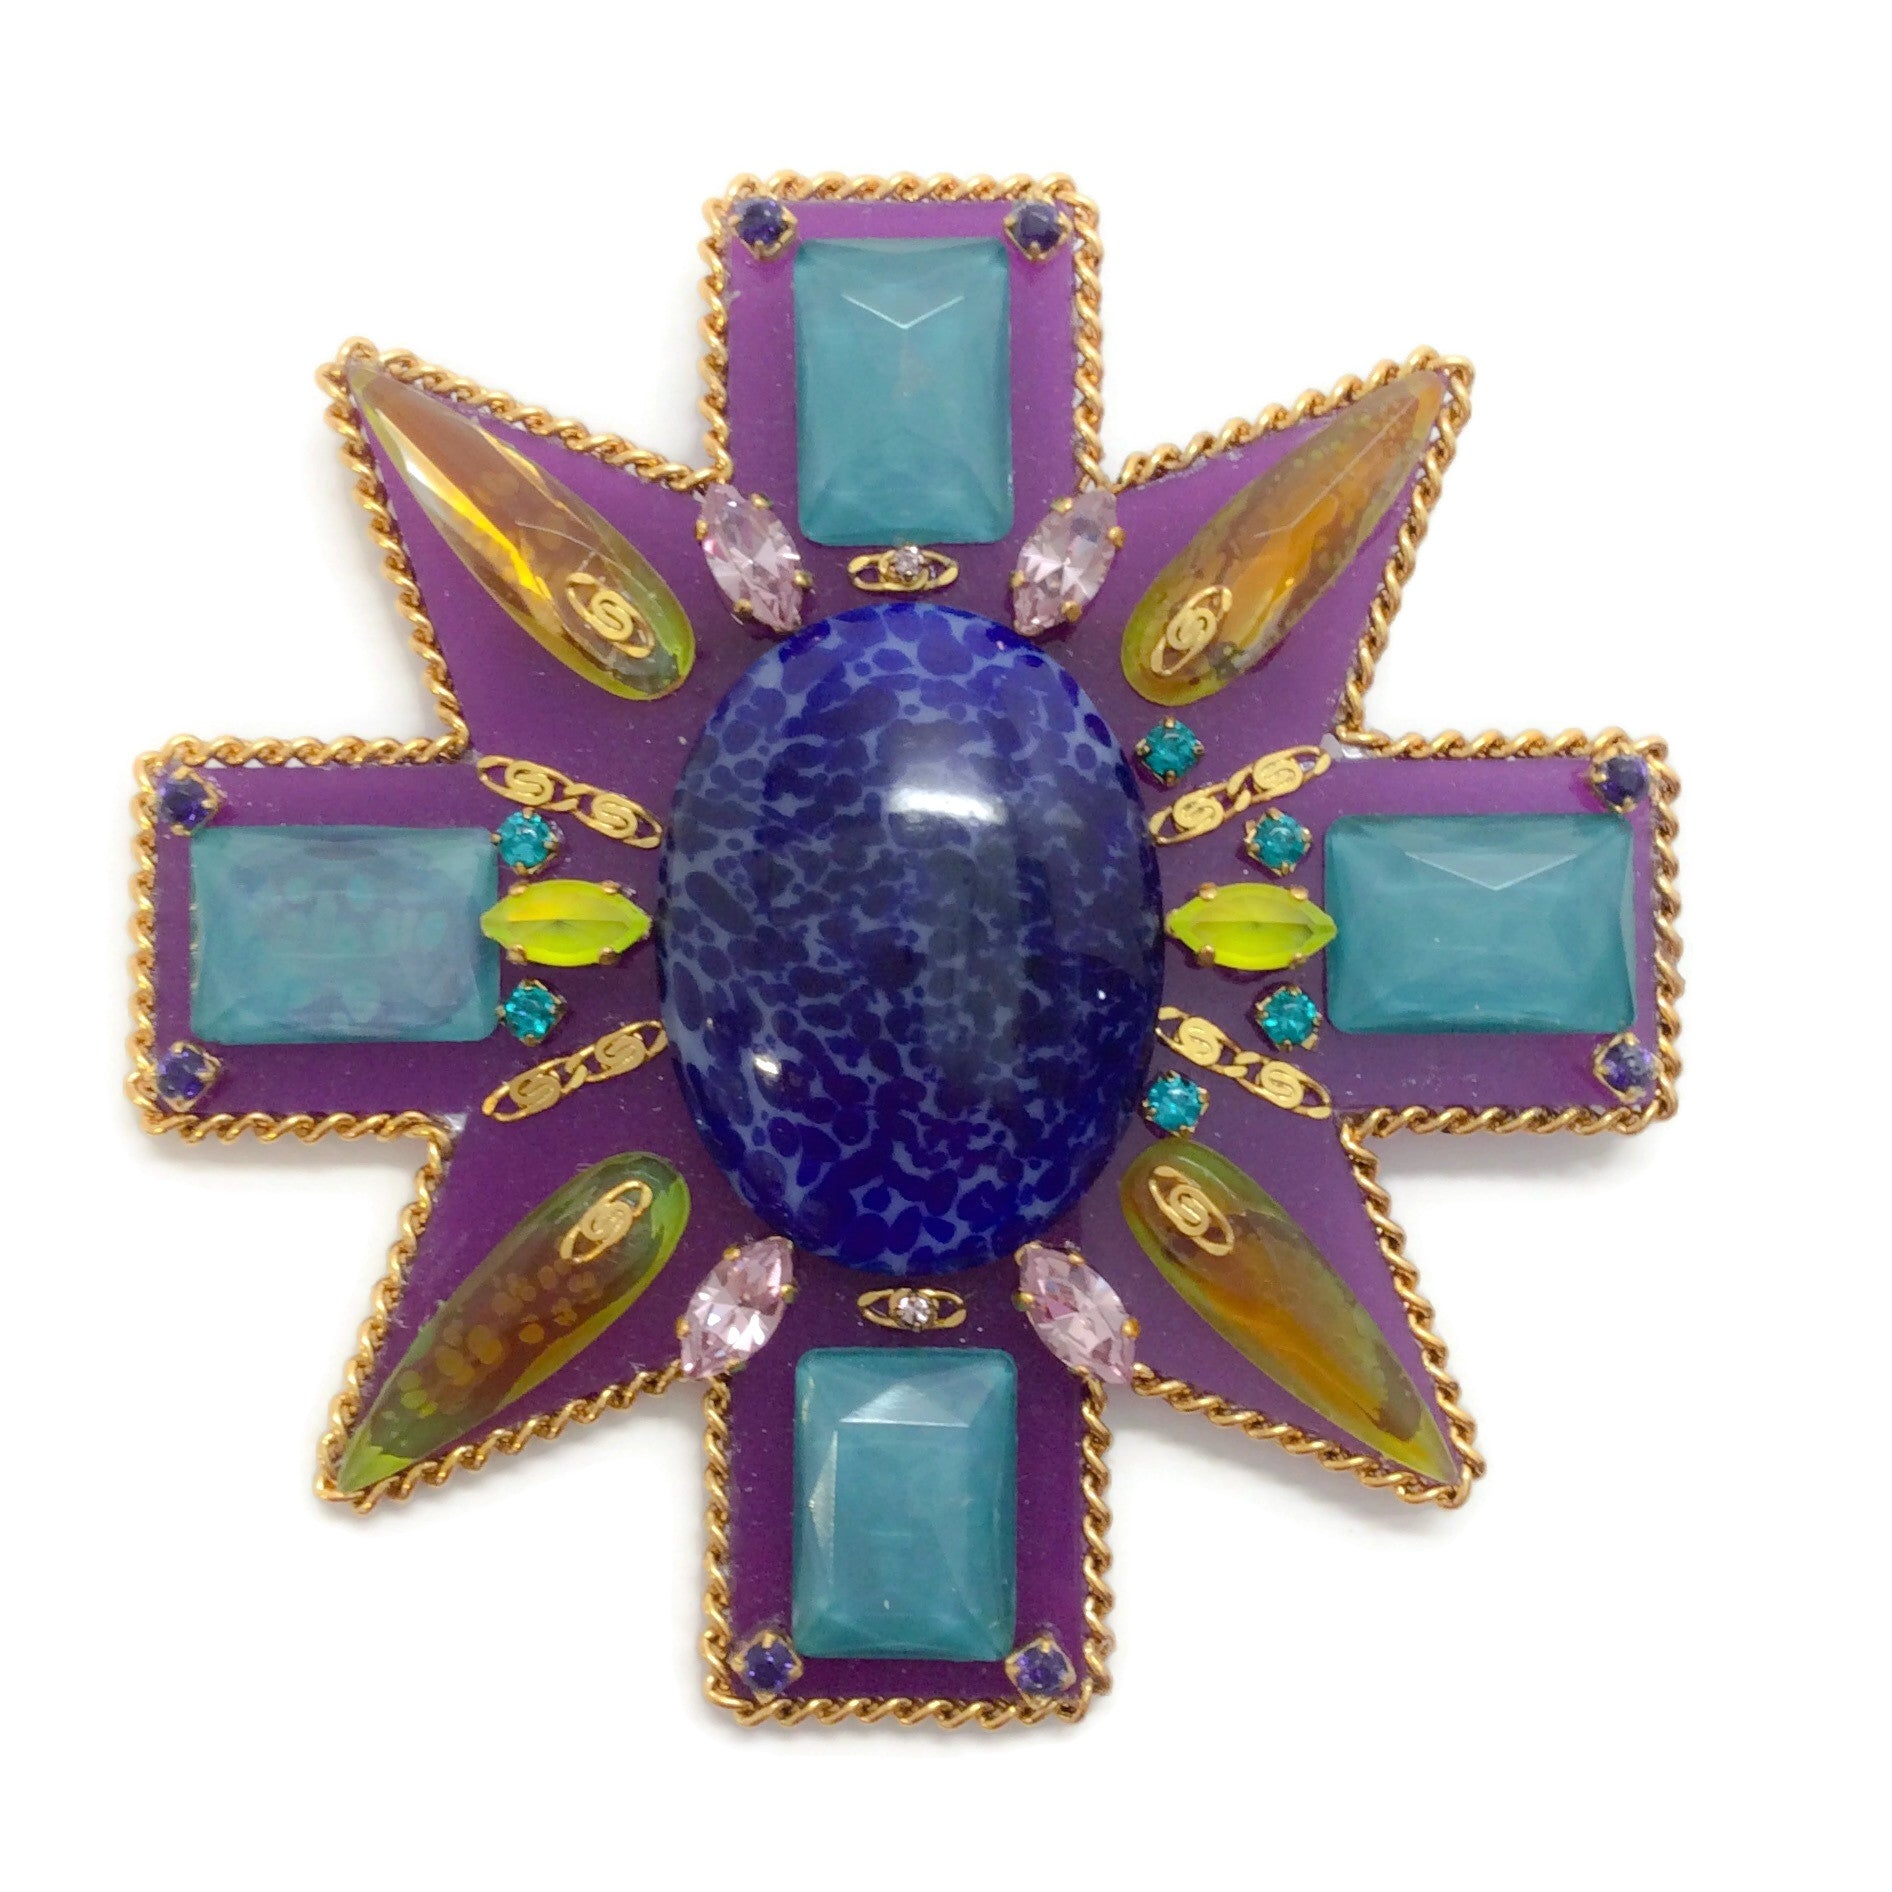 Erickson Beamon Blue / Turquoise Girls On Film Brooch